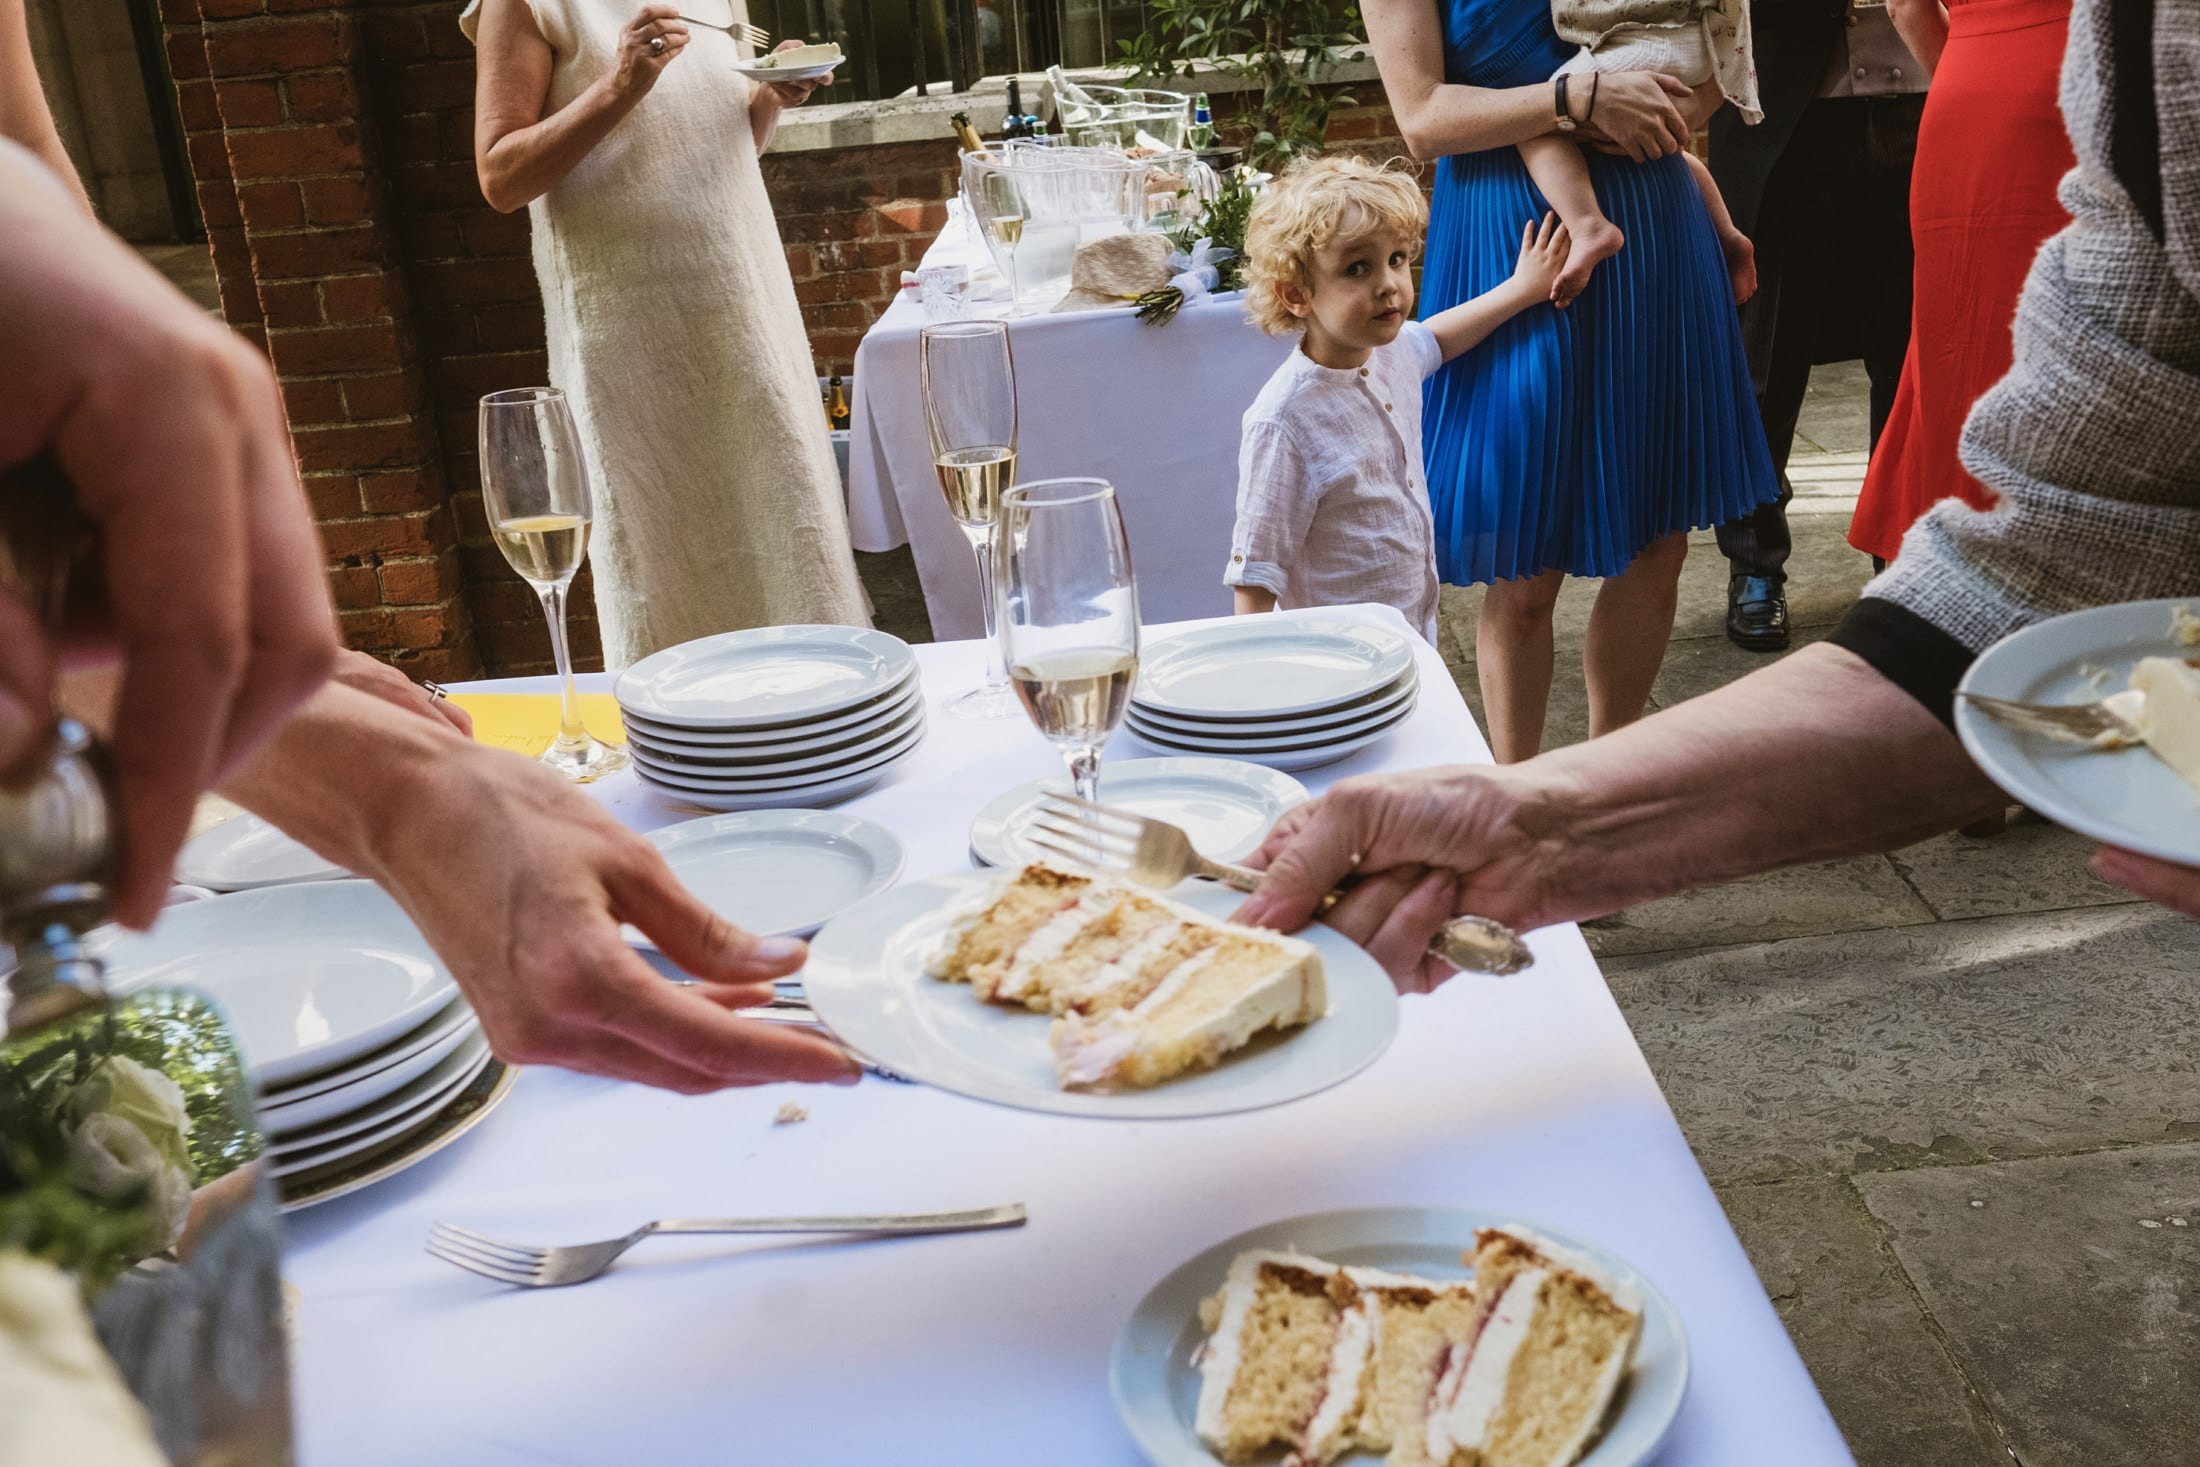 A little boy touches his mum's leg and stares at the camera whilst around him we see the shapes of guests being served cake. No-one else's face is visible. Unposed documentary wedding moment photographed by York Place Studios